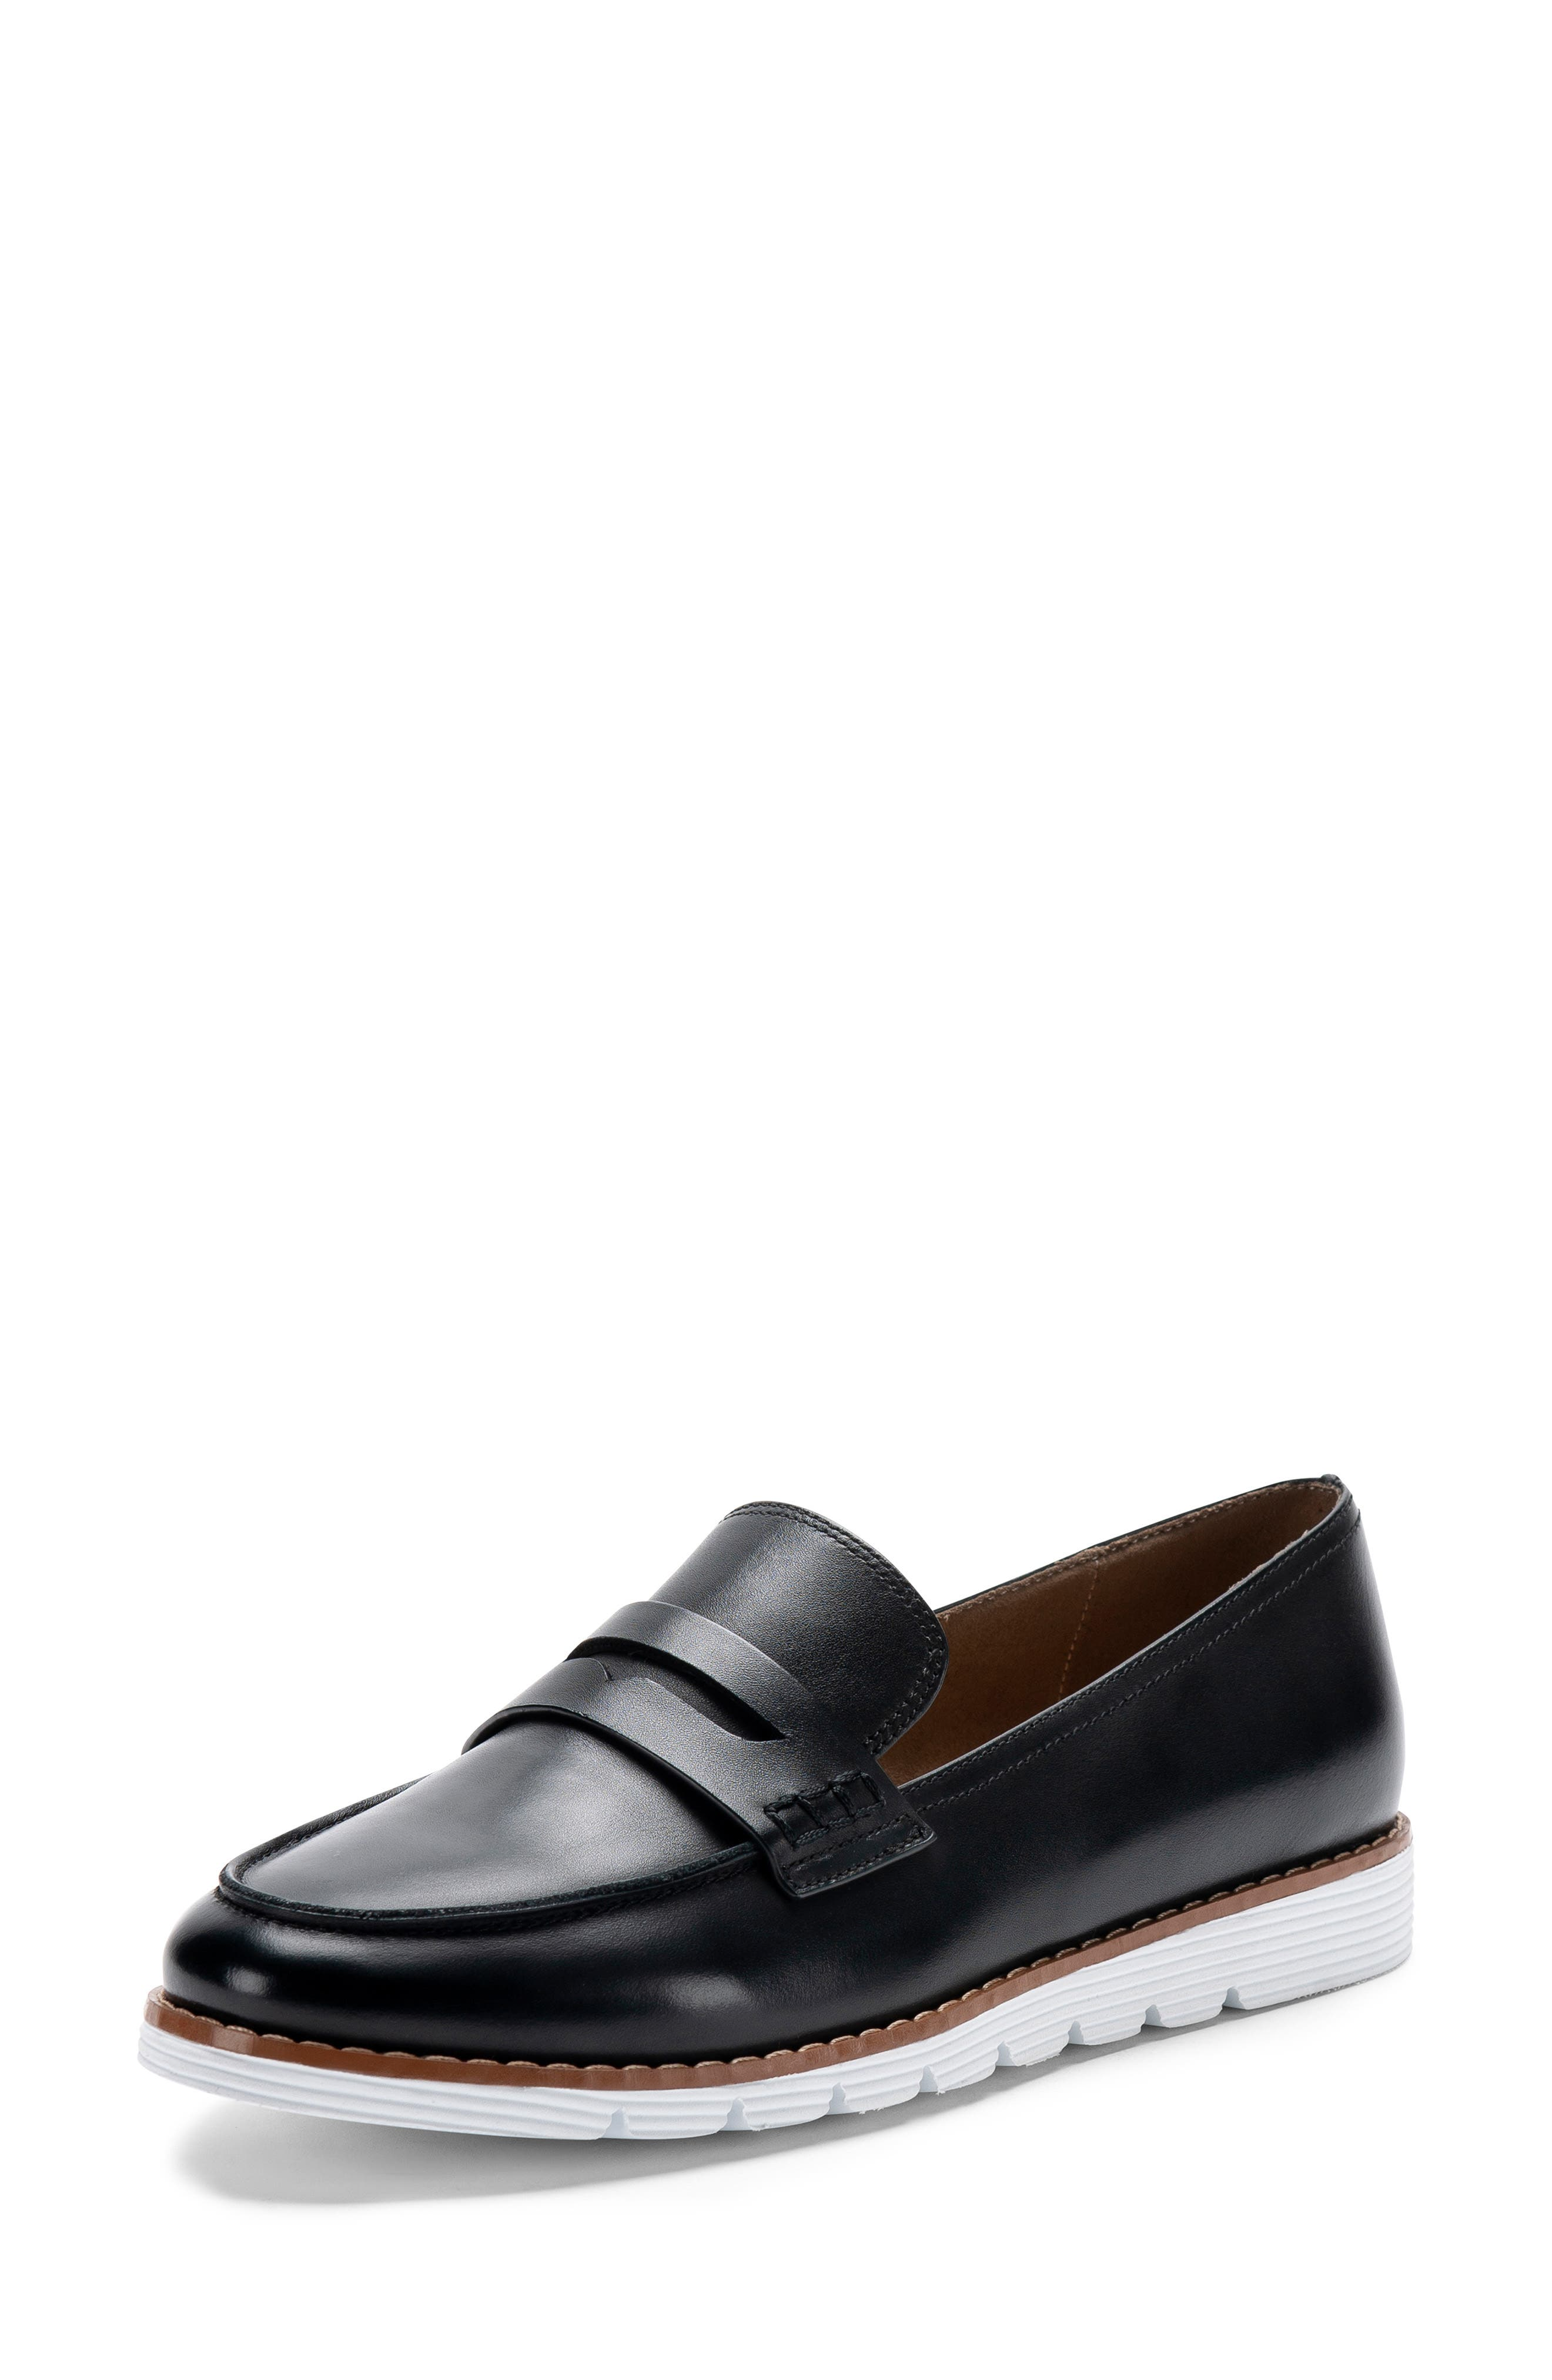 BLONDO, Waterproof Penny Loafer, Alternate thumbnail 7, color, BLACK LEATHER